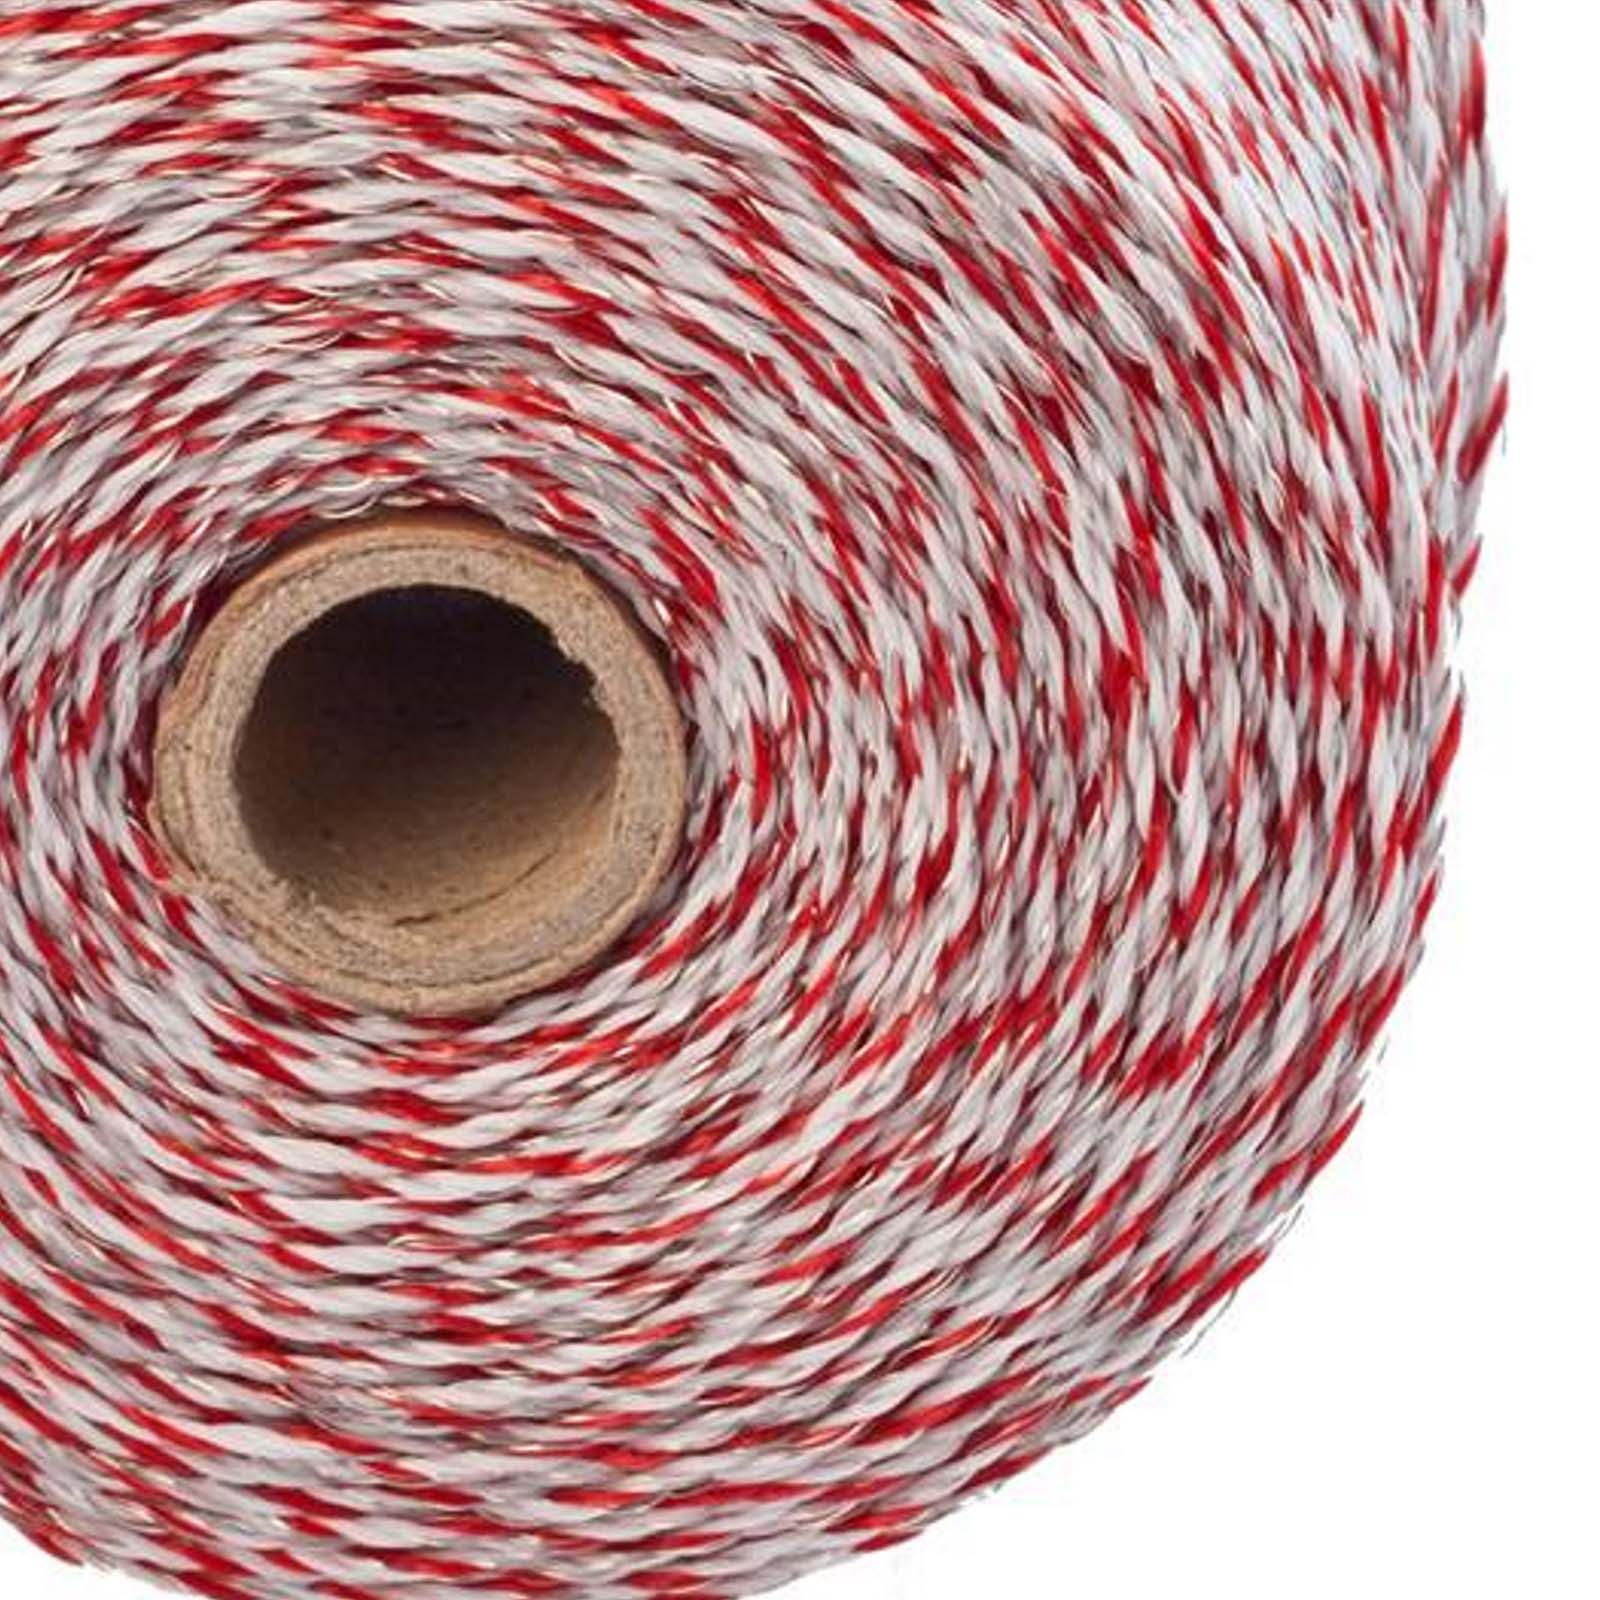 500m Roll Polywire 2.3mm for Electric Fence Fencing Kit Stainless Steel Poly Wire